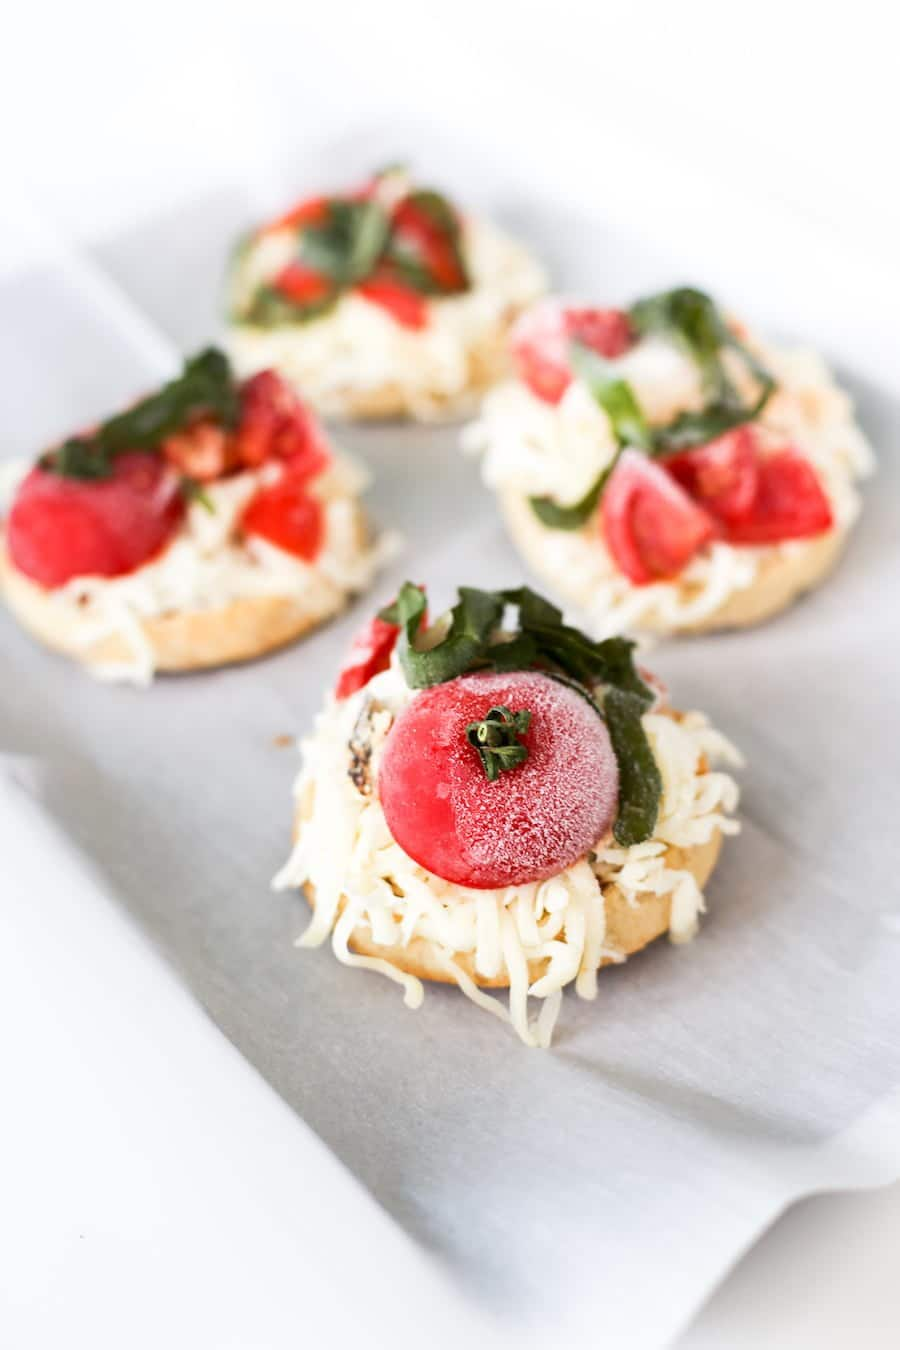 Tomato & Basil English Muffin Frozen Pizza Recipe // Salty Canary